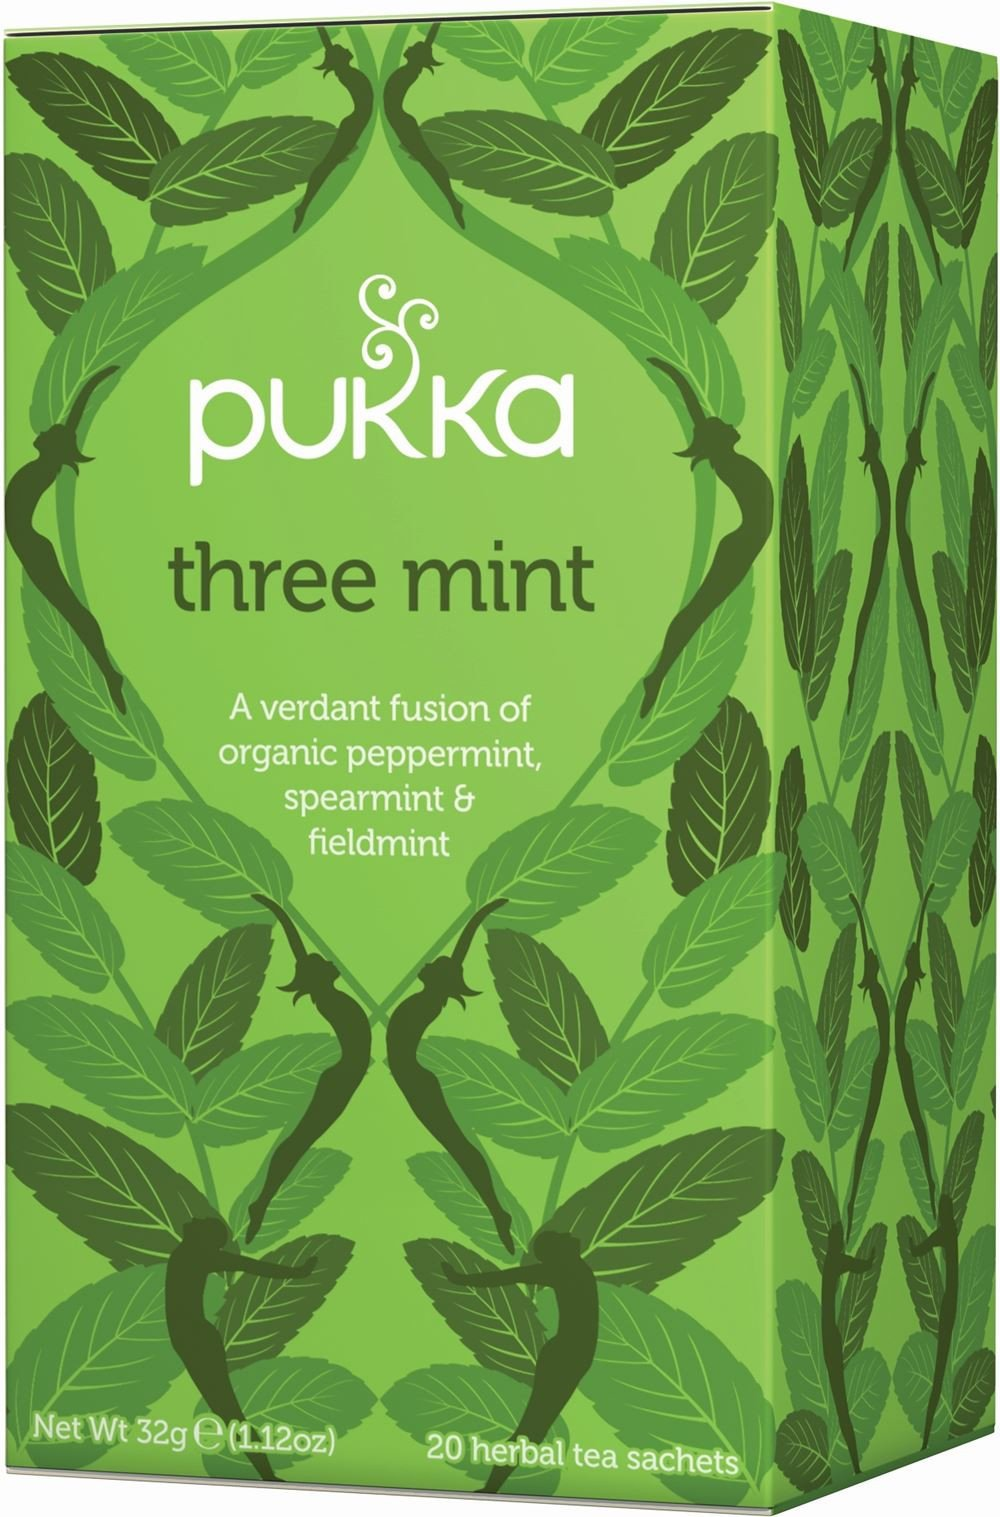 Pukka Three Mint Tea (20 Bags)